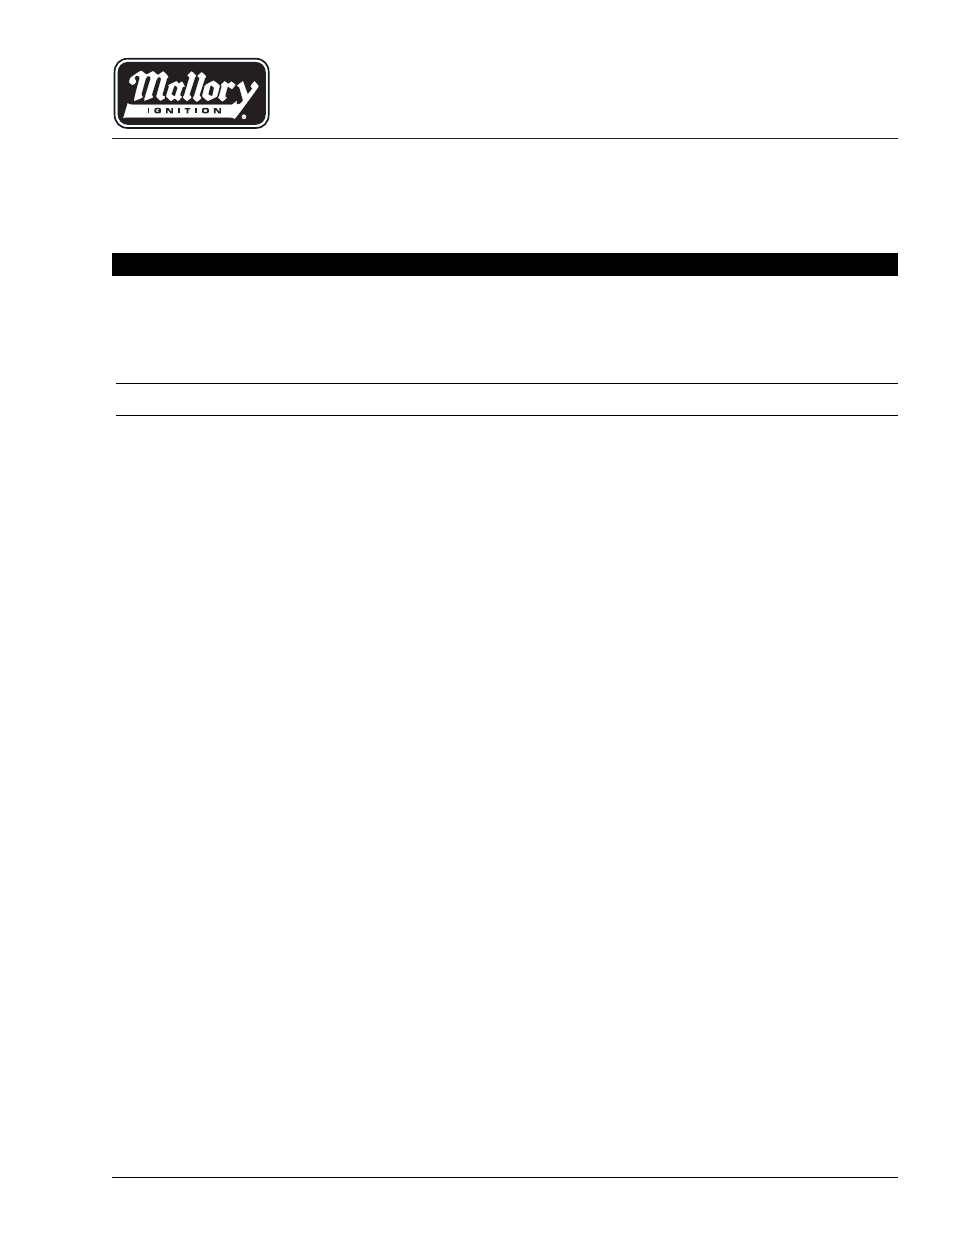 mallory ignition mallory unilite distributor page1 mallory ignition mallory unilite distributor user manual 13 mallory ignition wiring diagram at alyssarenee.co